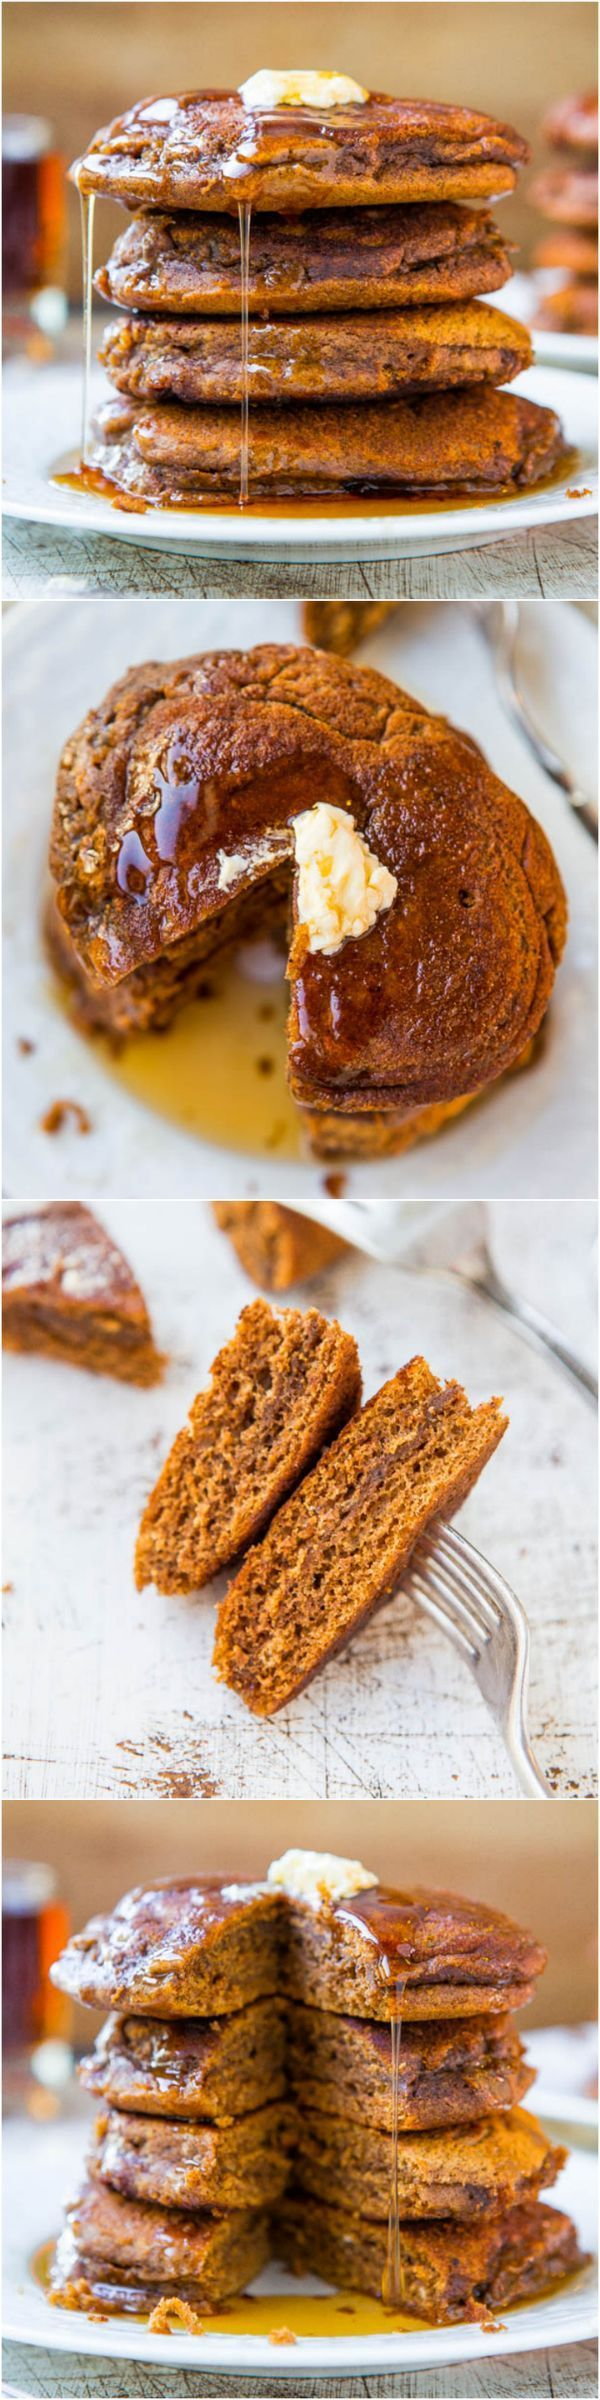 Soft & Fluffy Gingerbread Pancakes (with Ginger Molasses Syrup) by averiecooks.com